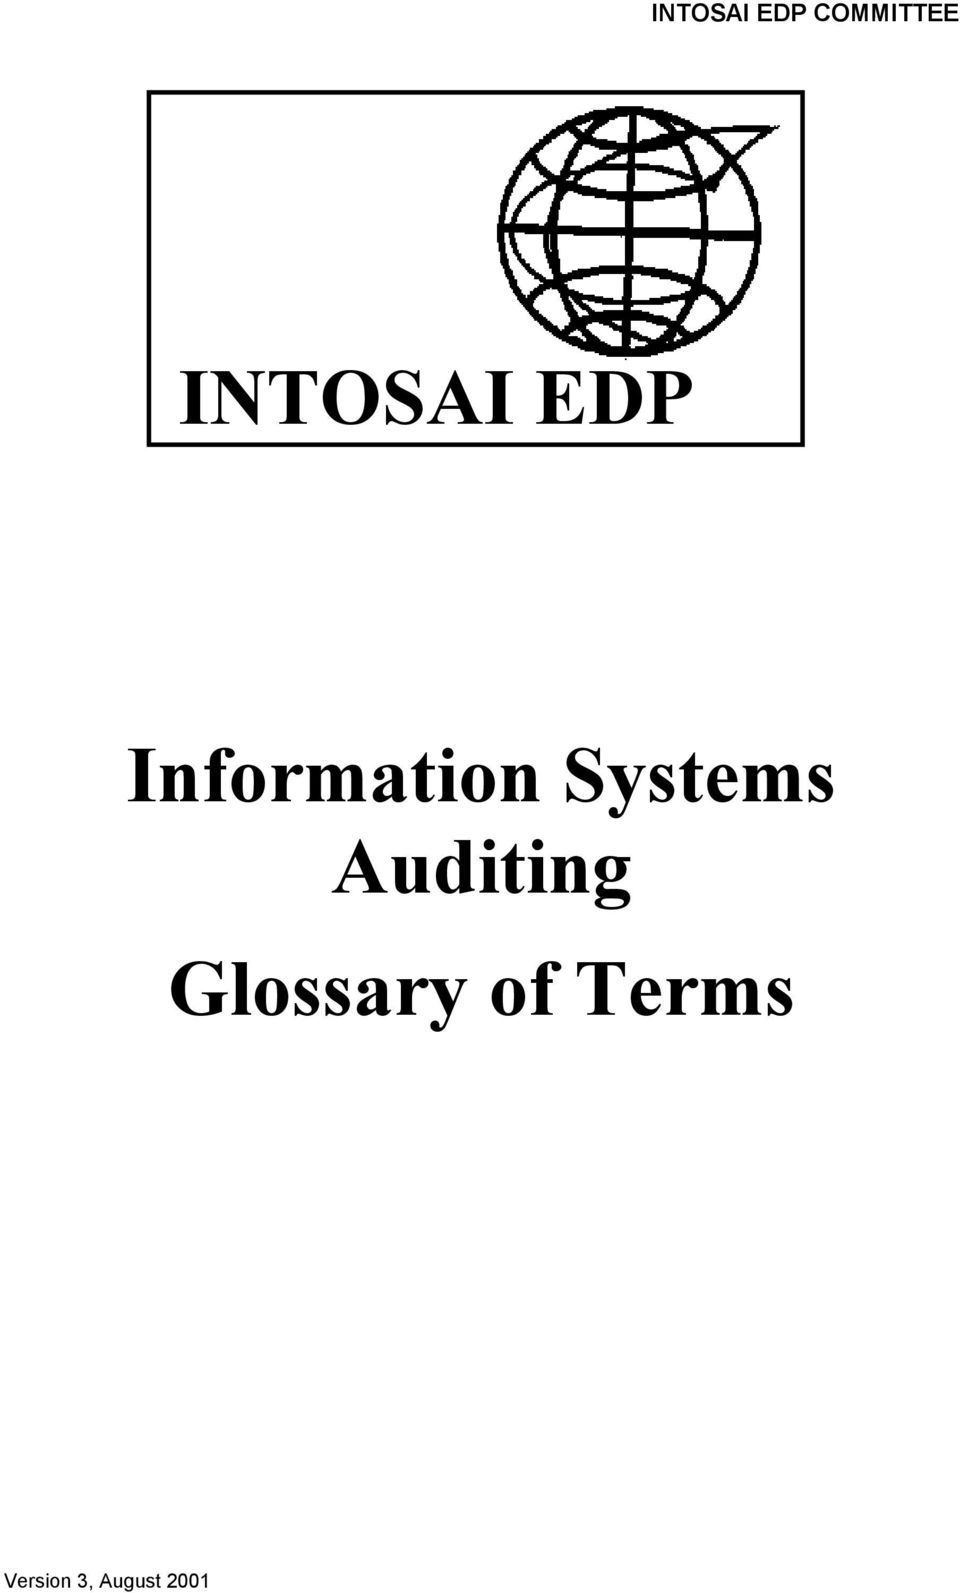 INTOSAI EDP COMMITTEE INTOSAI EDP  Information Systems Auditing